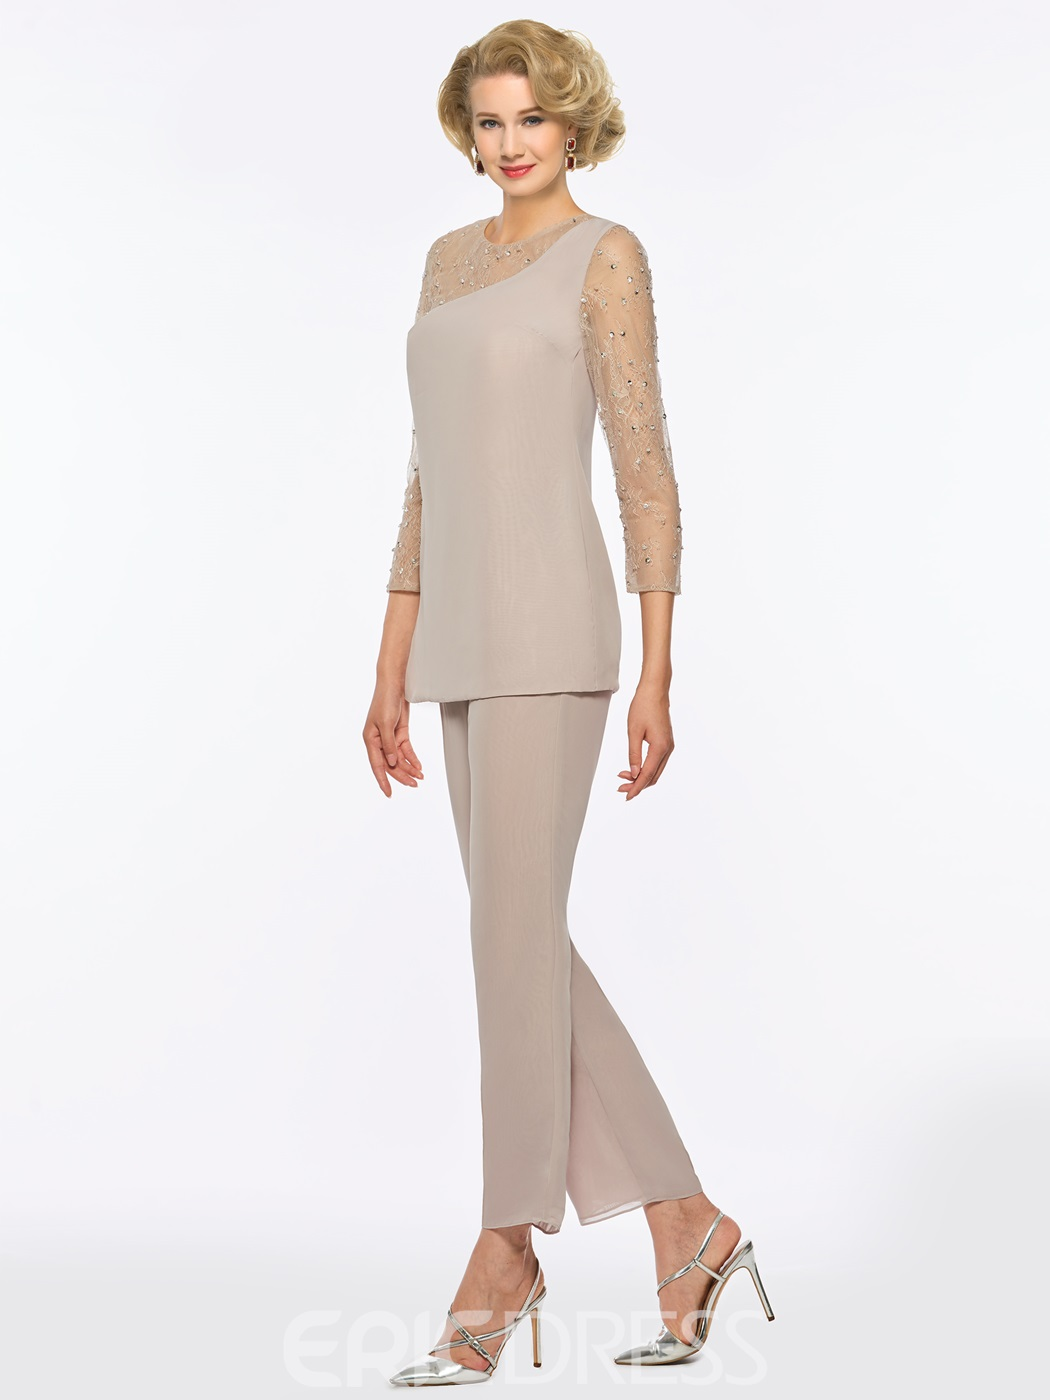 Ericdress Chiffon Mother of the Bride Jumpsuit with Sleeves